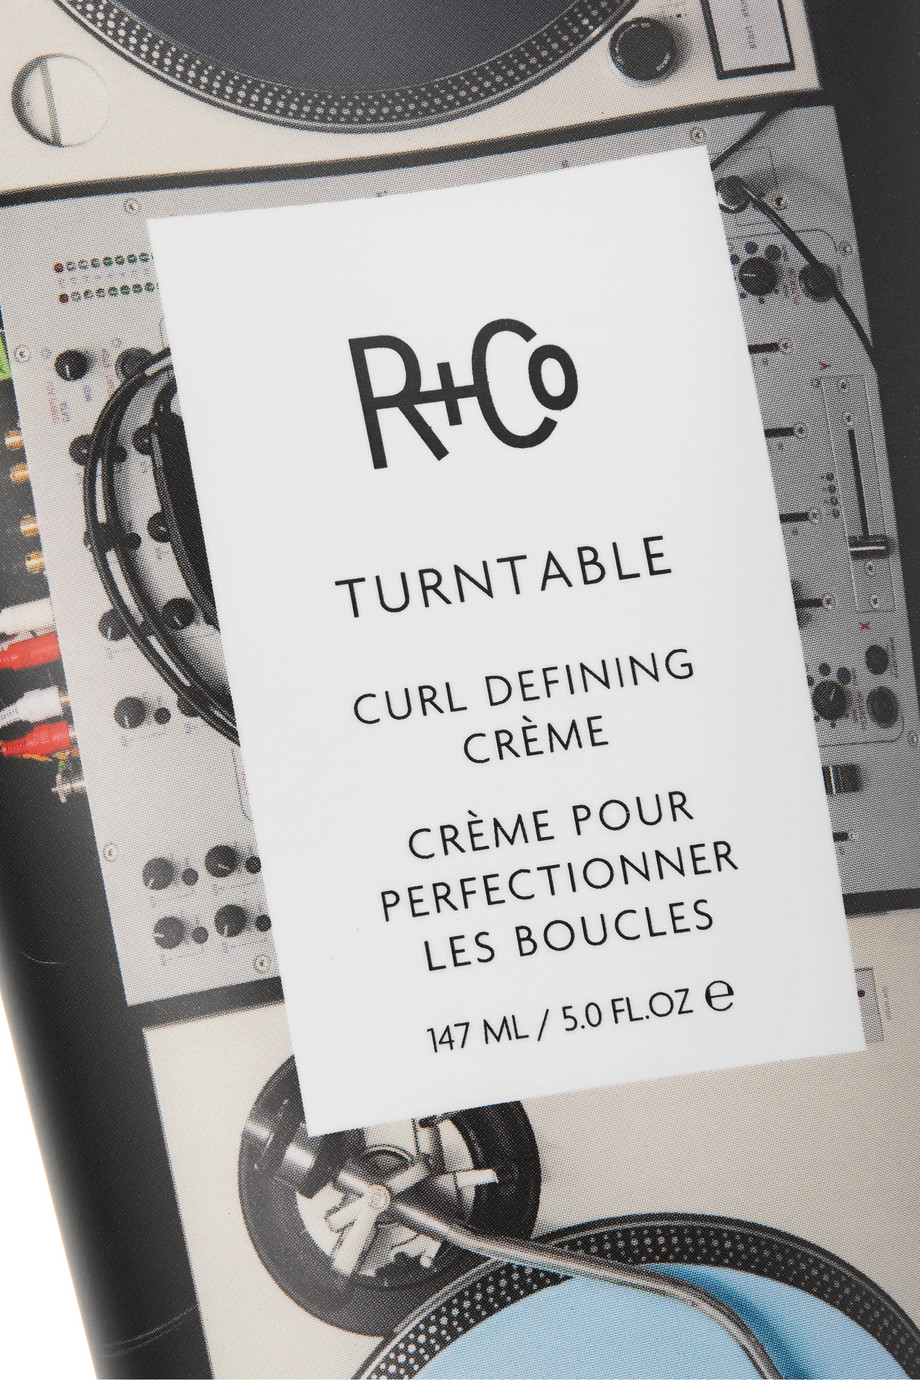 R+Co Turntable Curl Defining Crème, 147ml